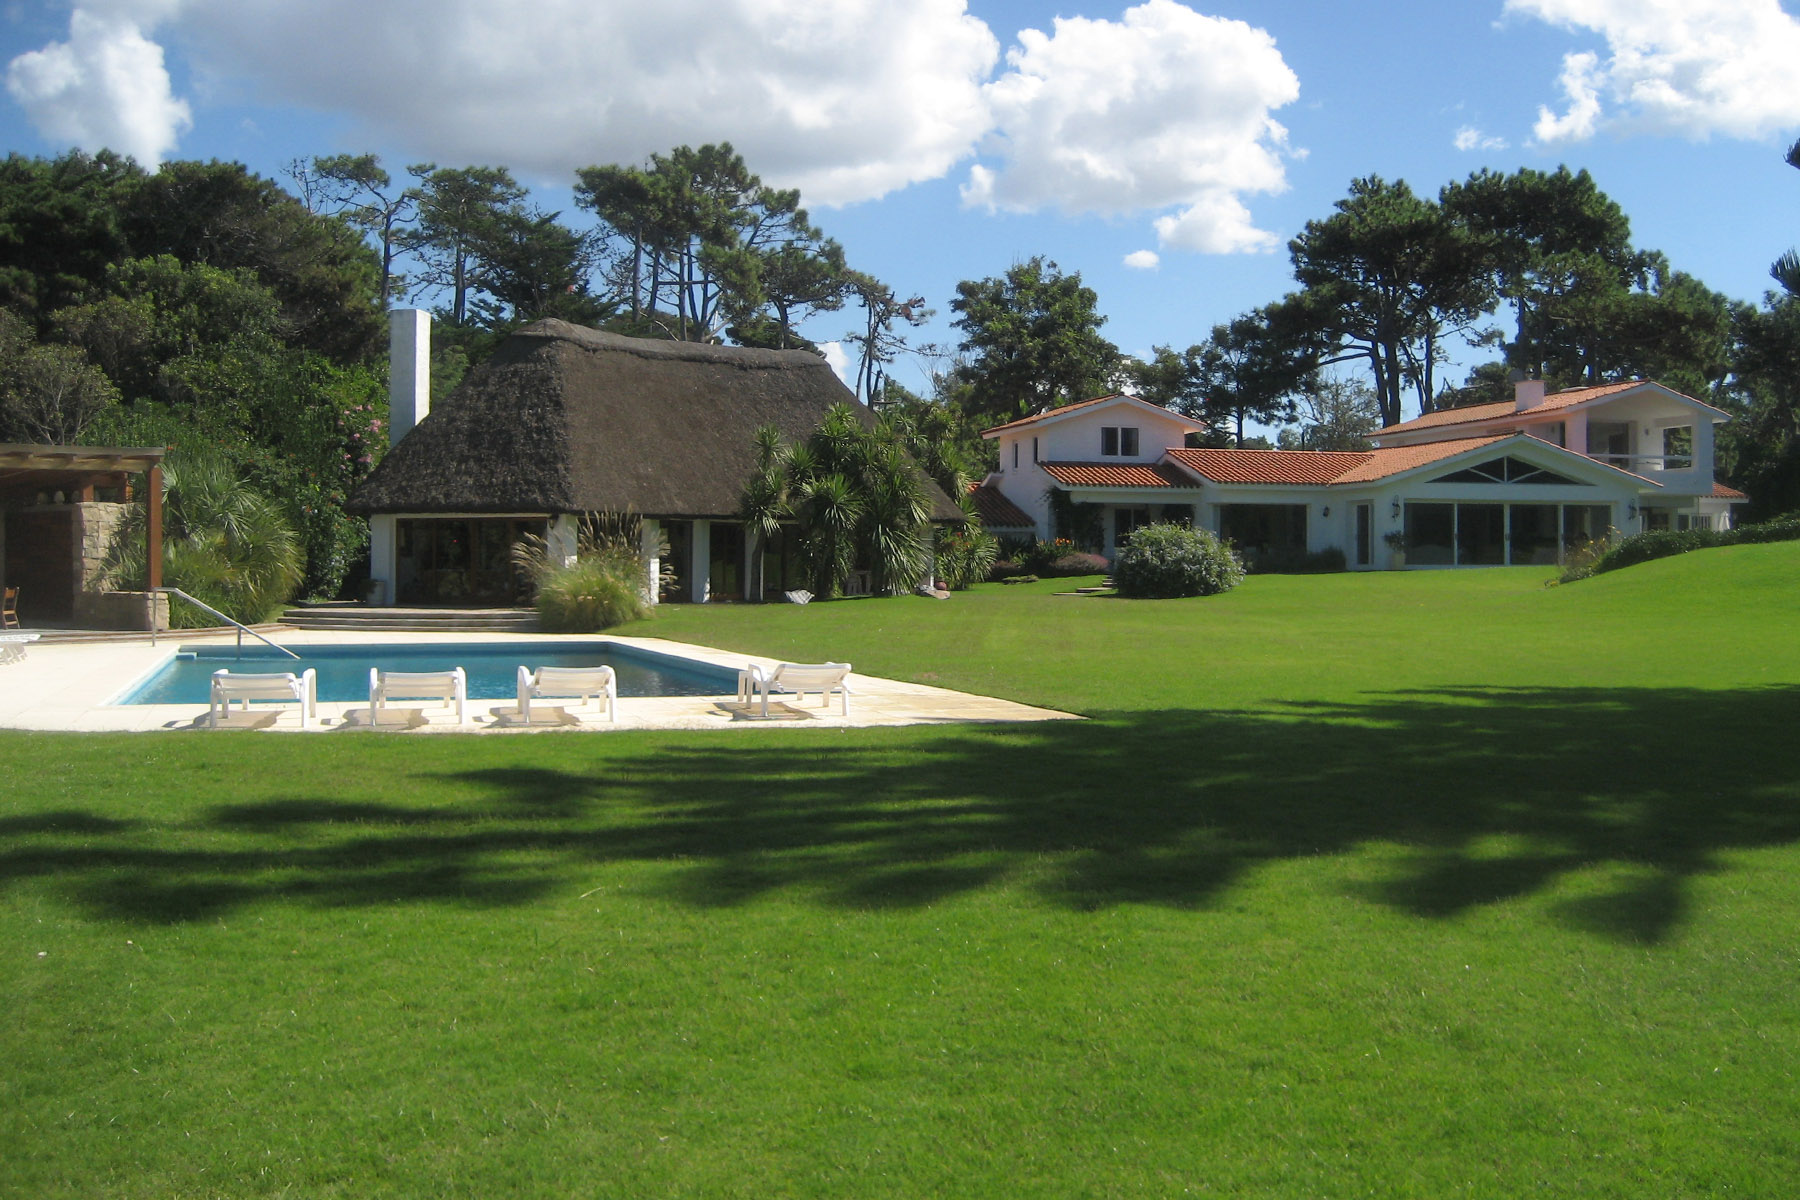 Single Family Home for Sale at RUCAMAY Stop 19 Brava Beach Punta Del Este, Maldonado, 20100 Uruguay